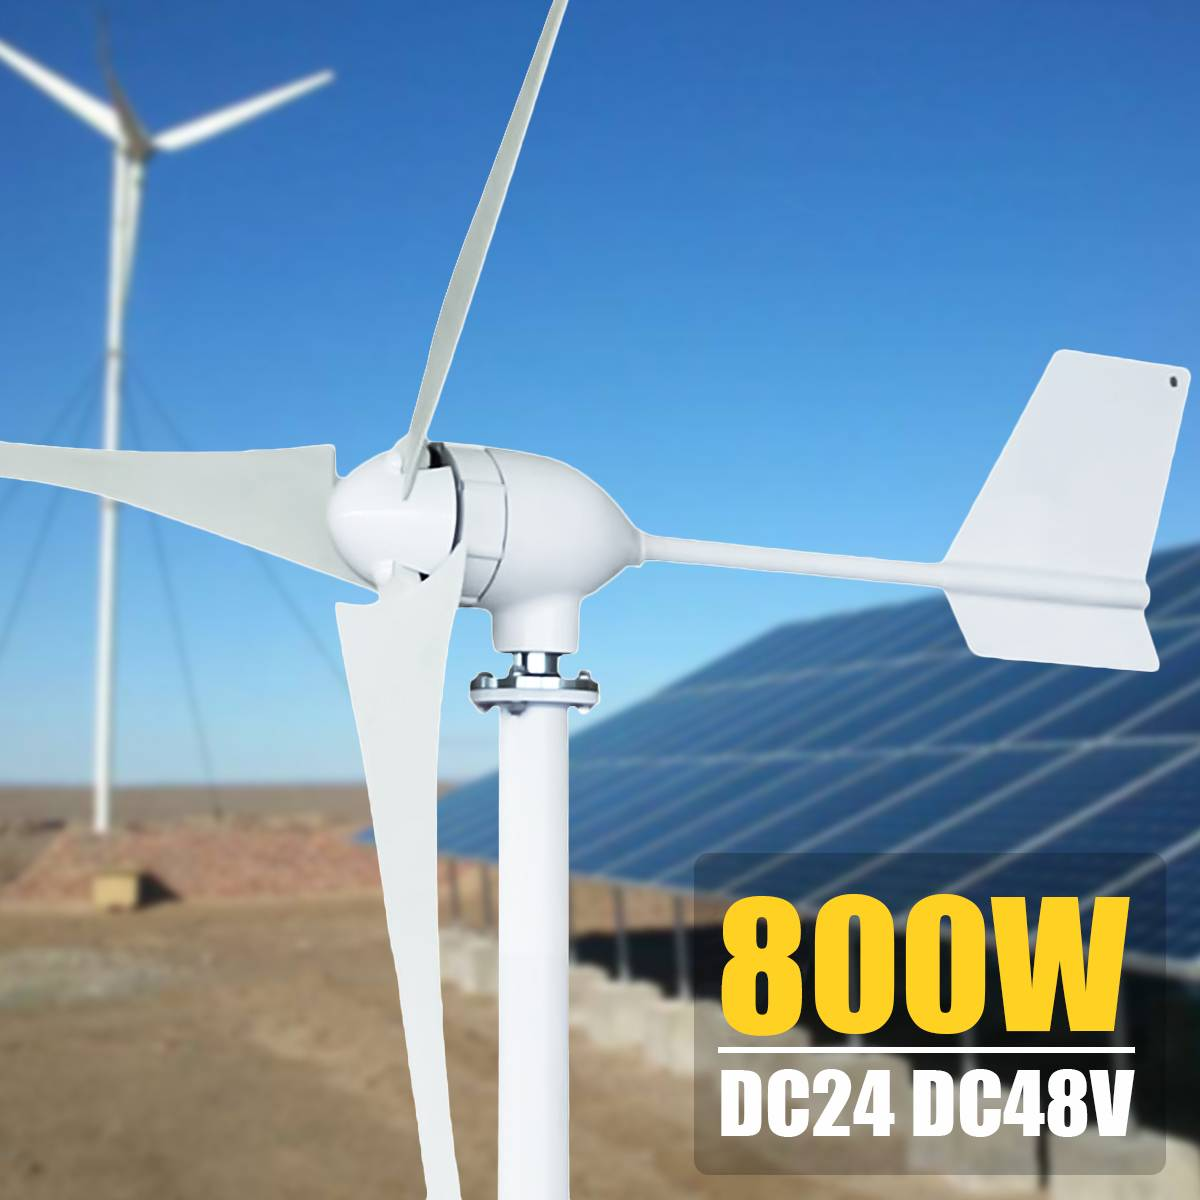 <font><b>800W</b></font> 24/48V <font><b>Wind</b></font> Power <font><b>Generator</b></font> 3/5 <font><b>Wind</b></font> Blades Option <font><b>Generator</b></font> Horizontal Fit for Home Camping Streetlight image